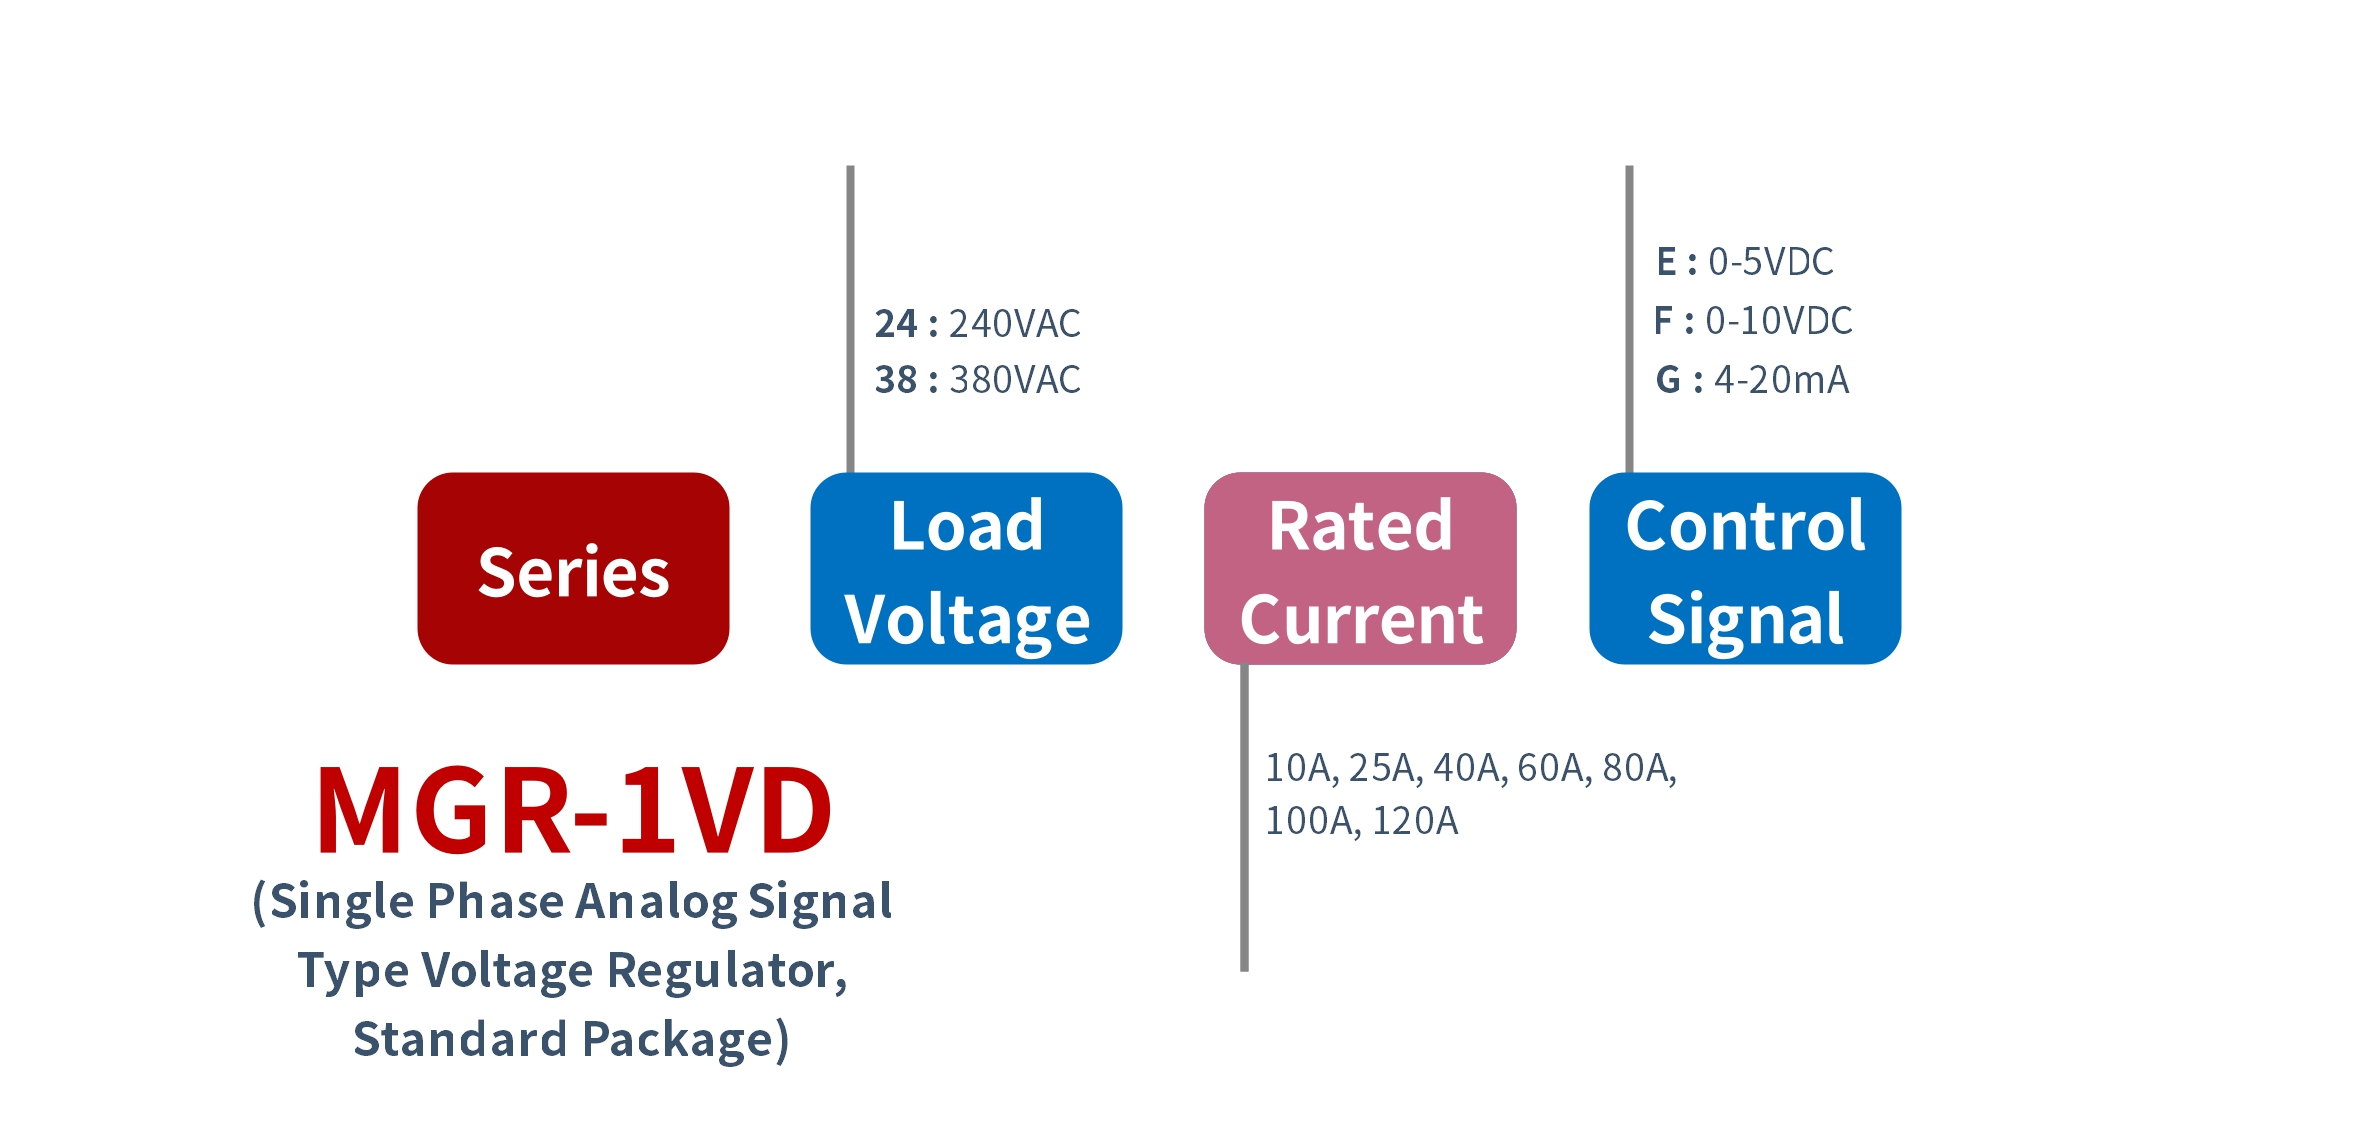 How to order MGR-1VD Series Voltage Power Regulator